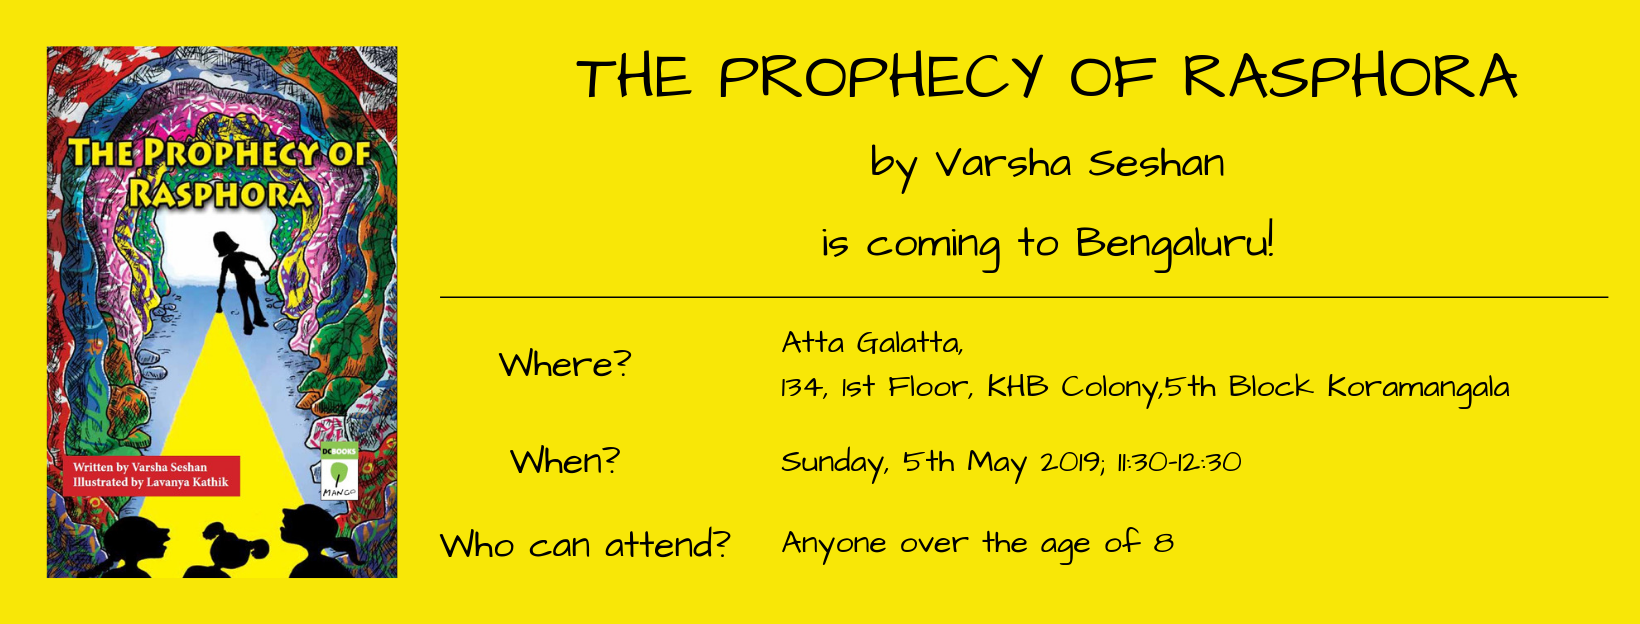 Poster for the launch of The Prophecy of Rasphora at Atta Galatta, Bengaluru on 5th May 2019